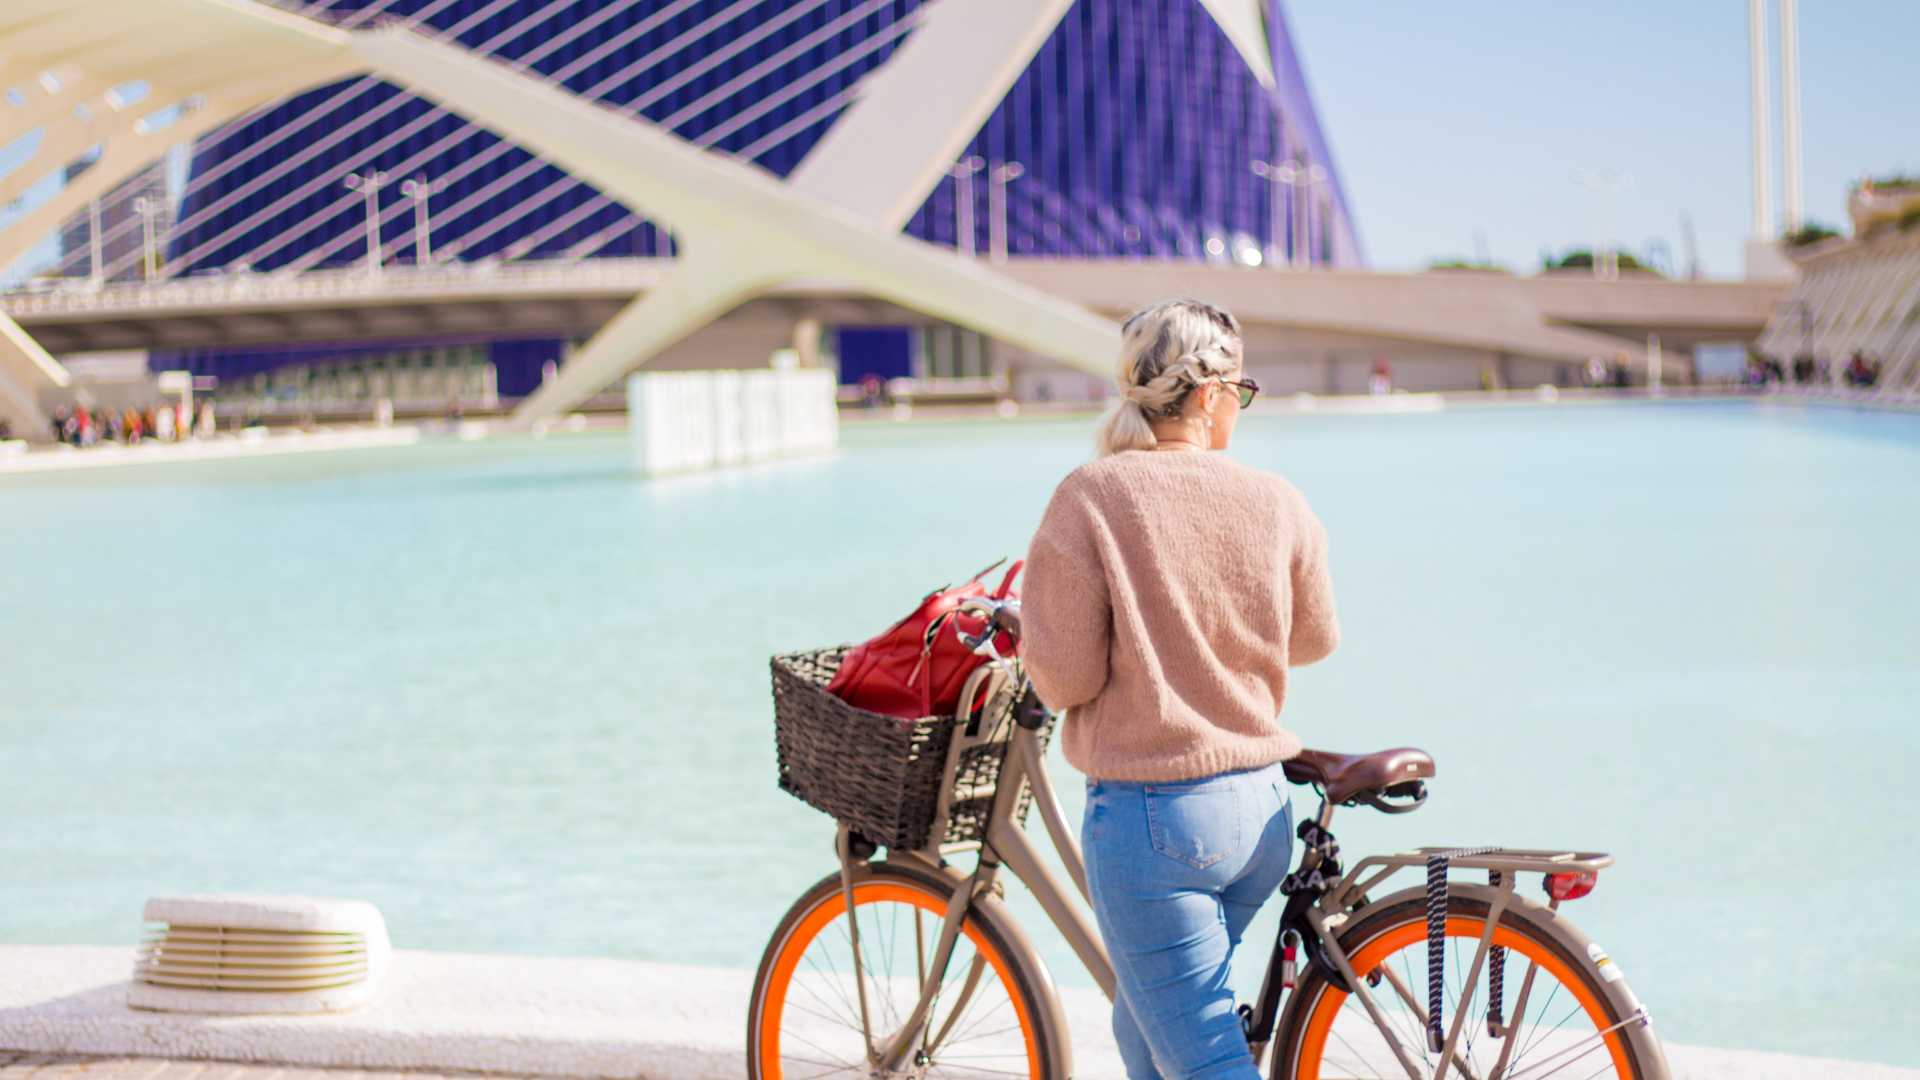 sustainable tourism centre of valencia